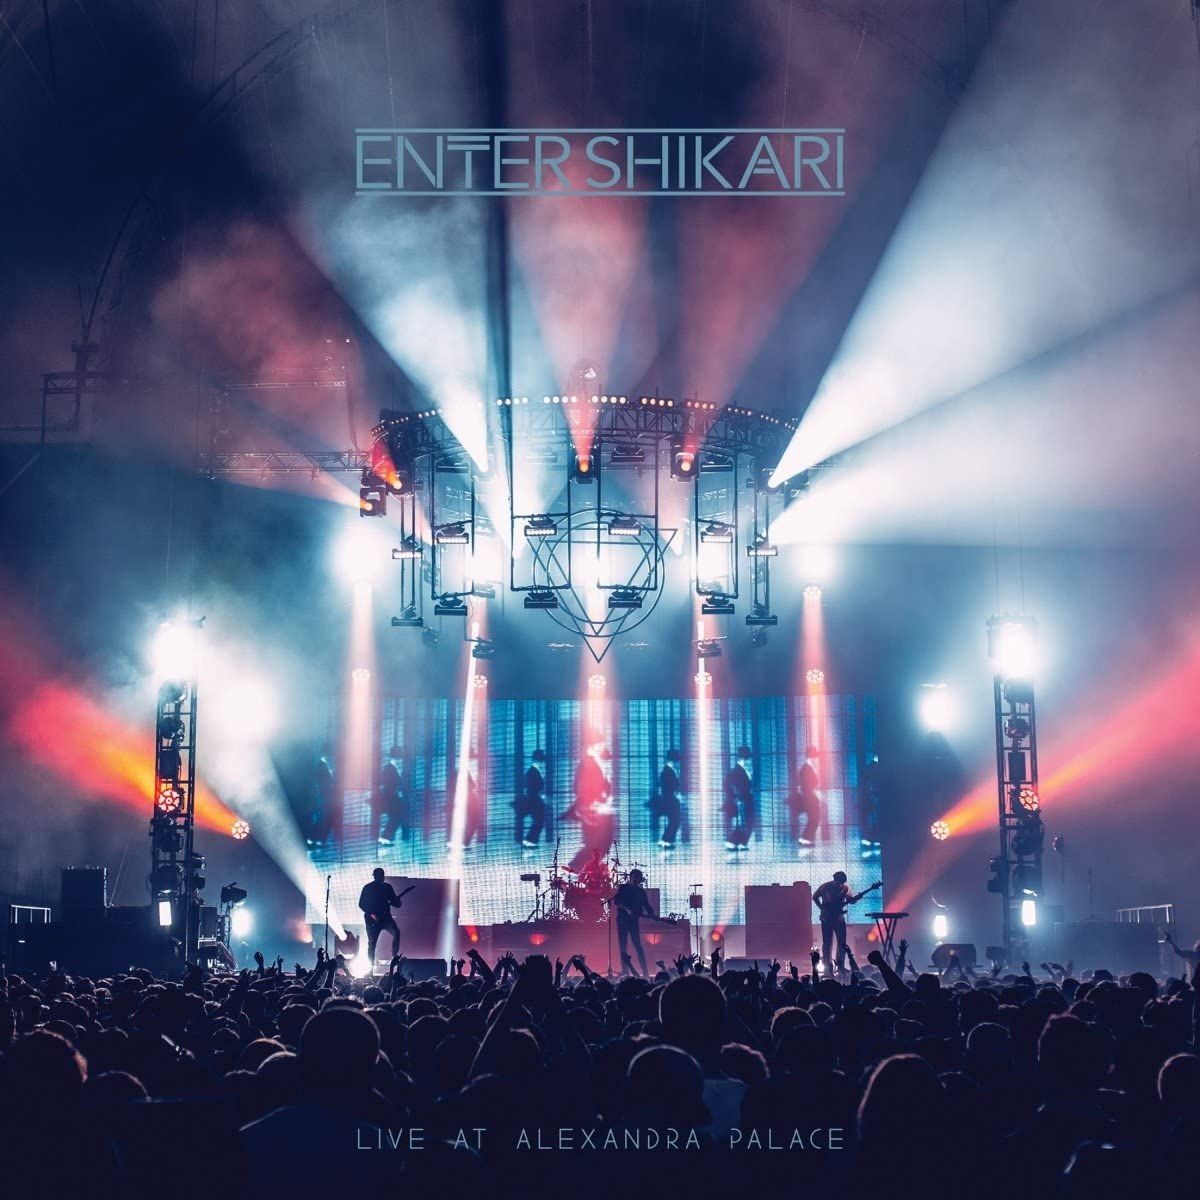 Enter Shikari – Live At Alexandra Palace Limited Edition Blue With Red & White Splatter Vinyl